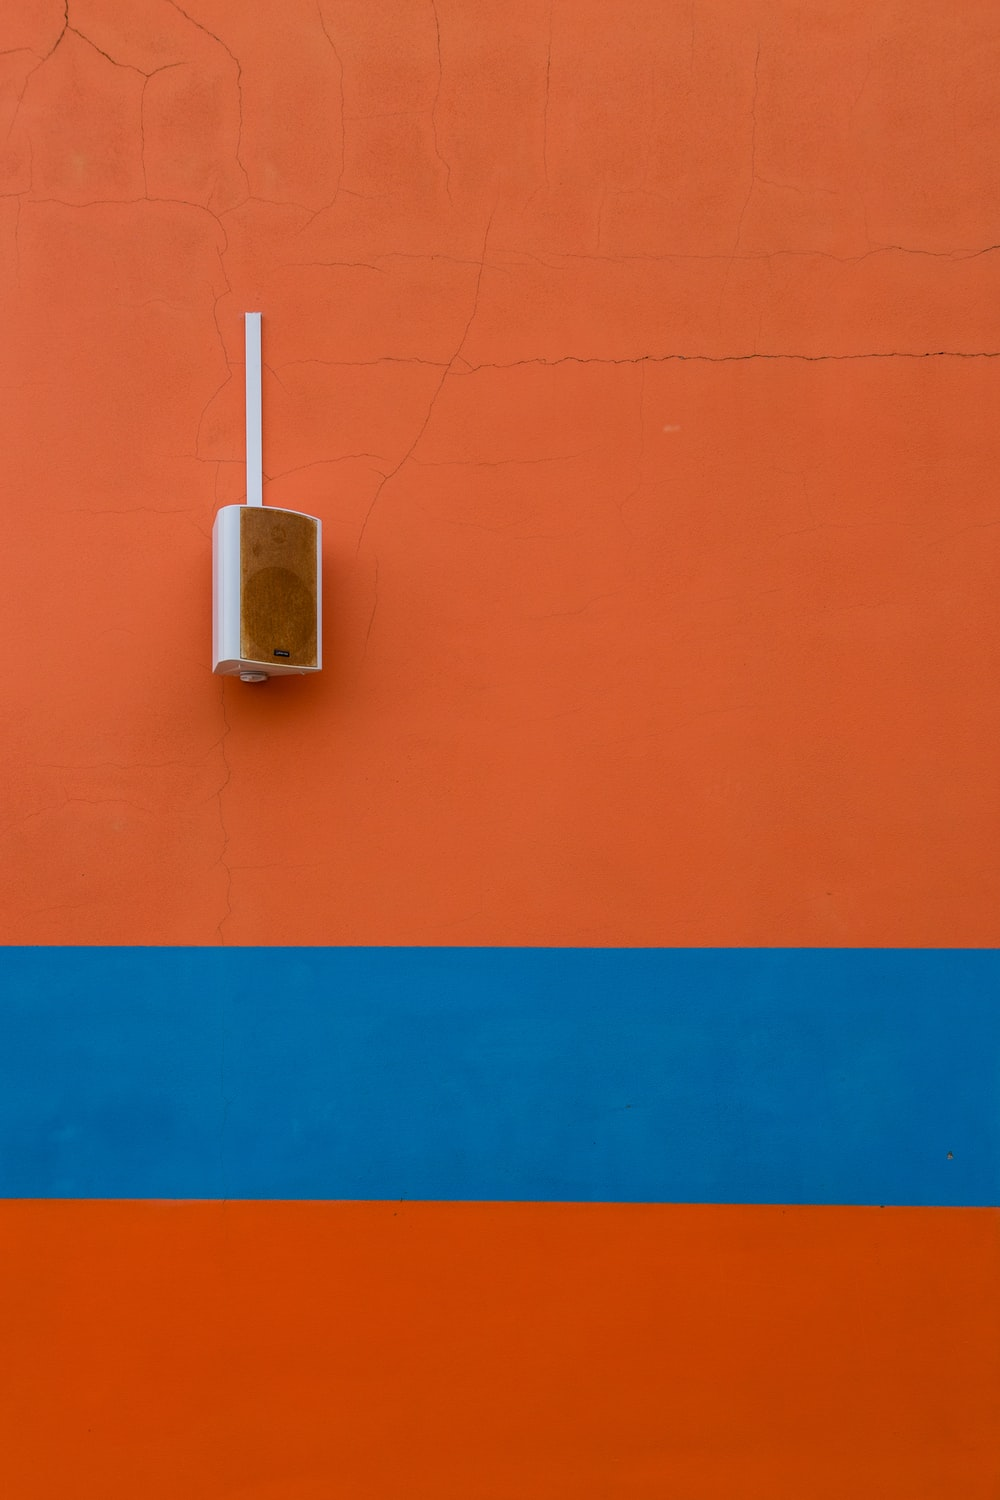 white speaker mounted on orange painted wall